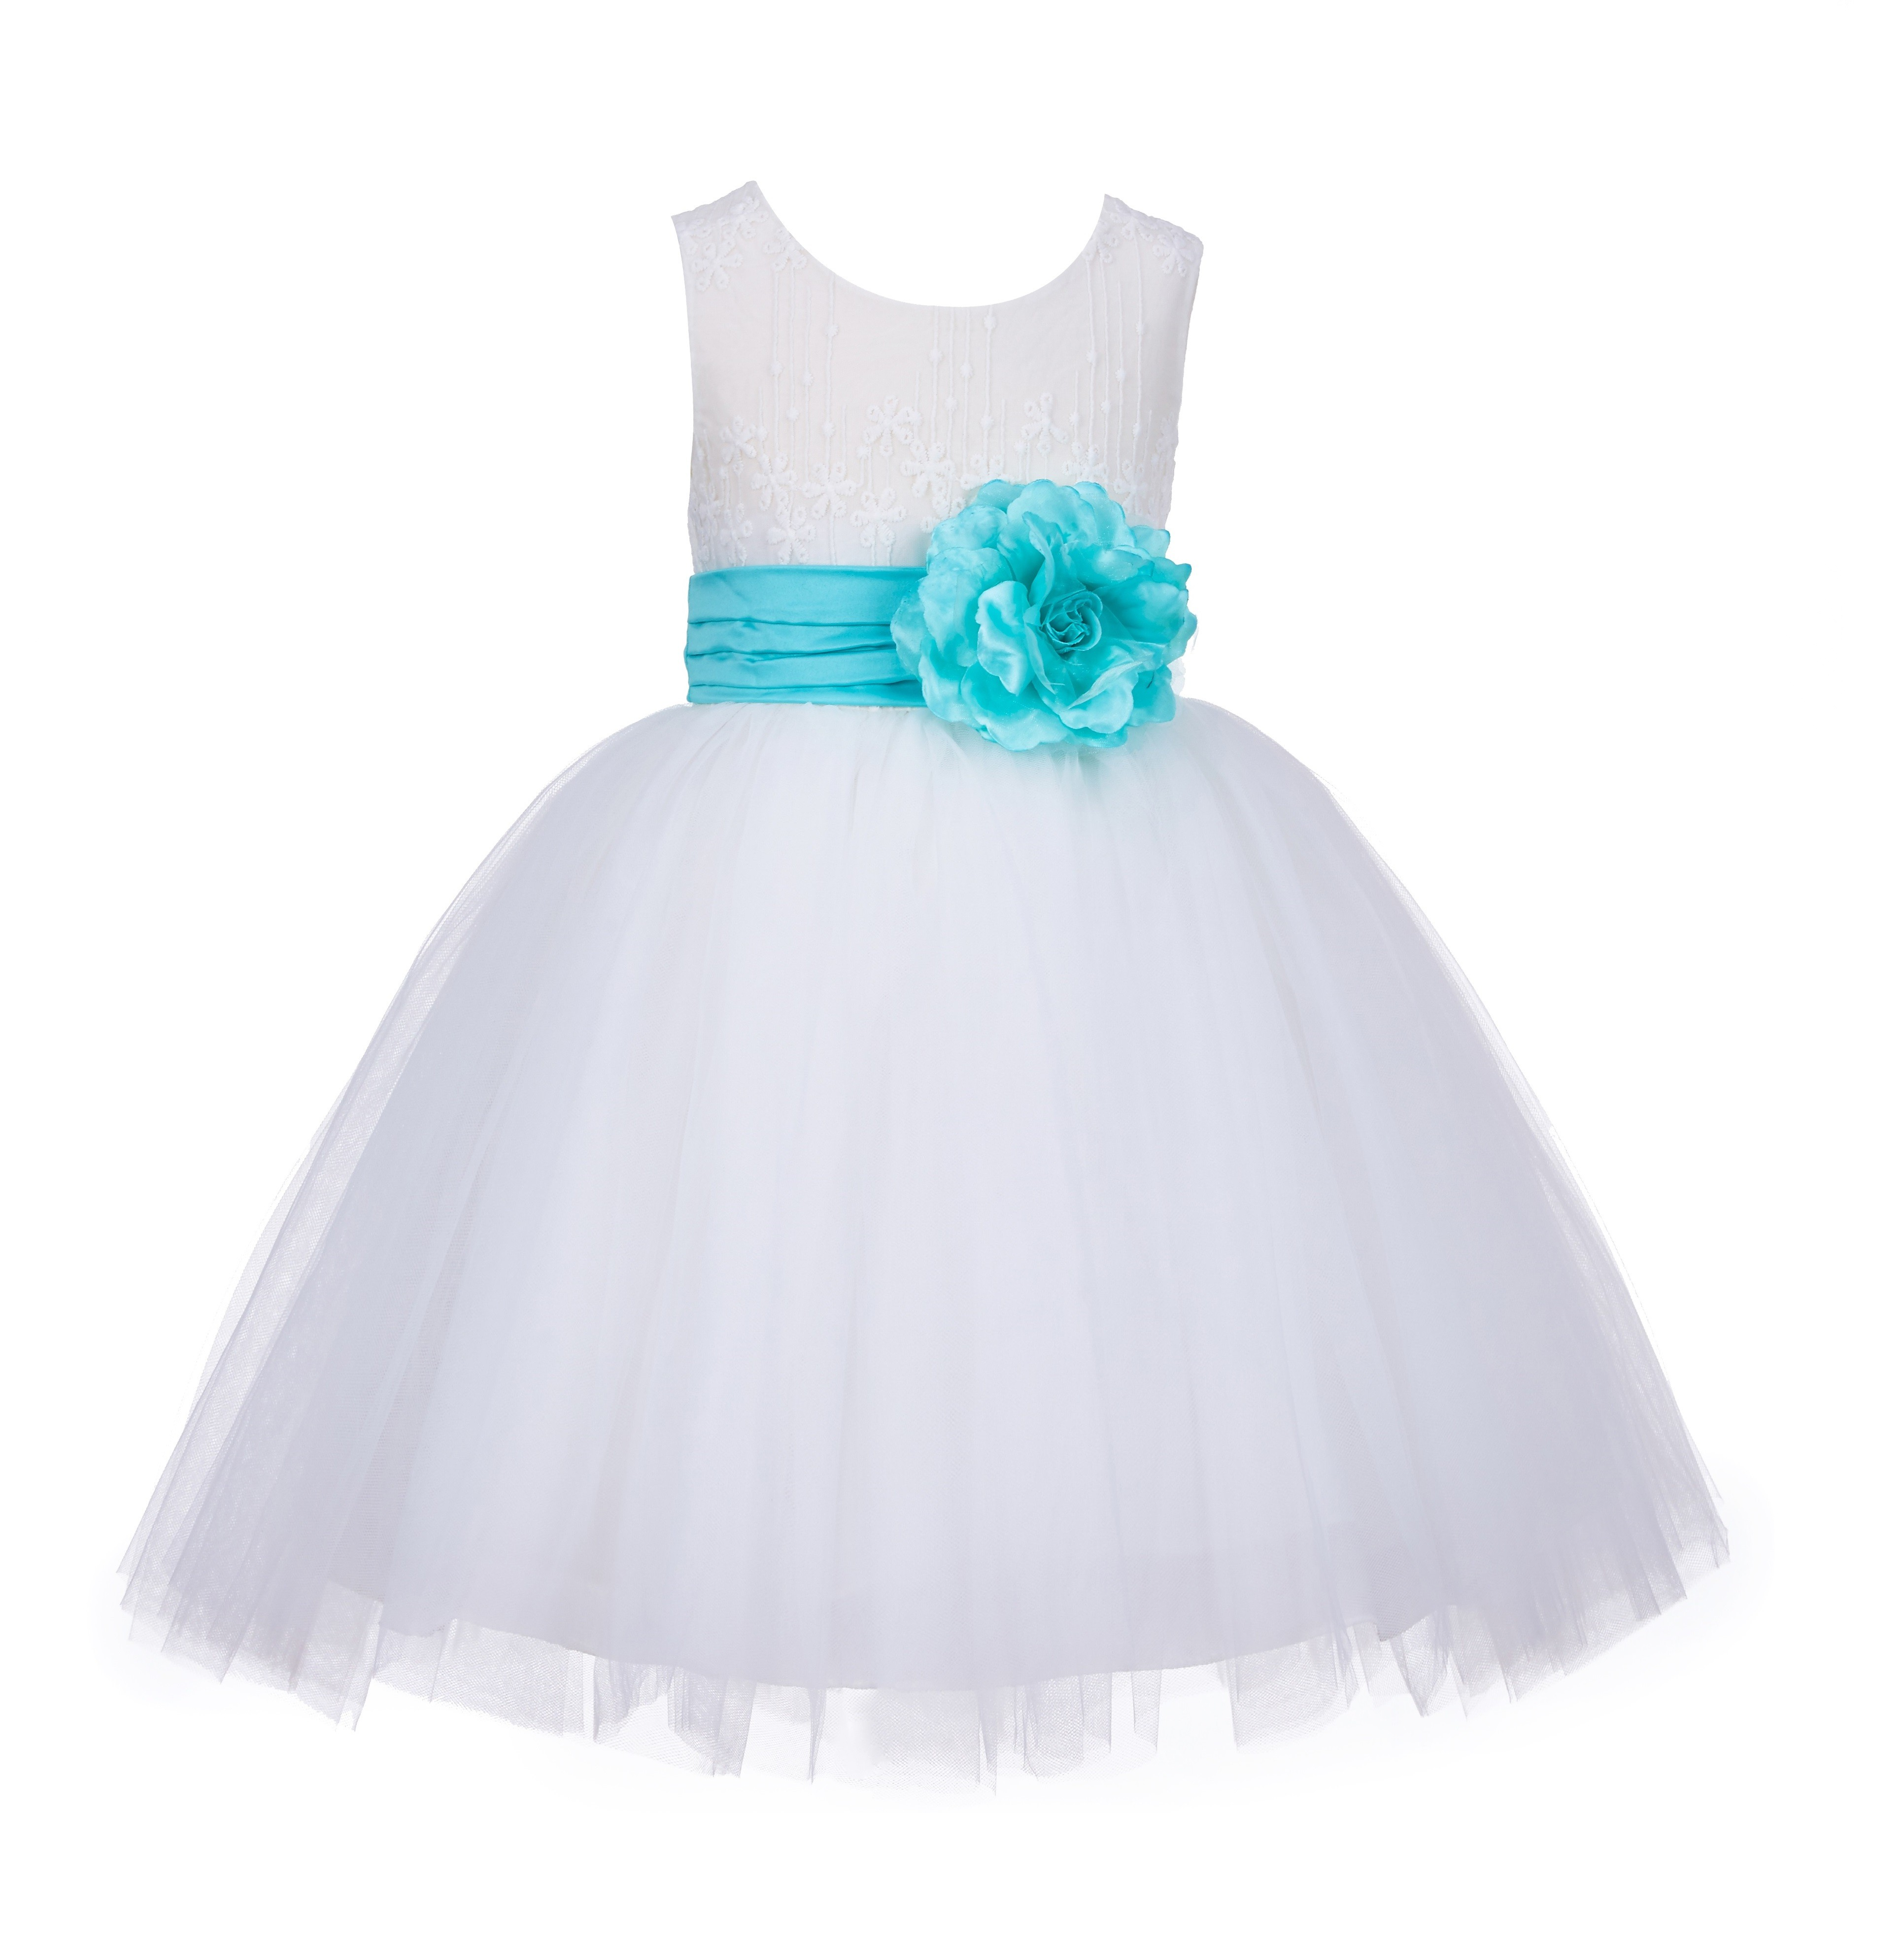 Ivorytiffany Lace Embroidery Tulle Flower Girl Dress Pageant 118